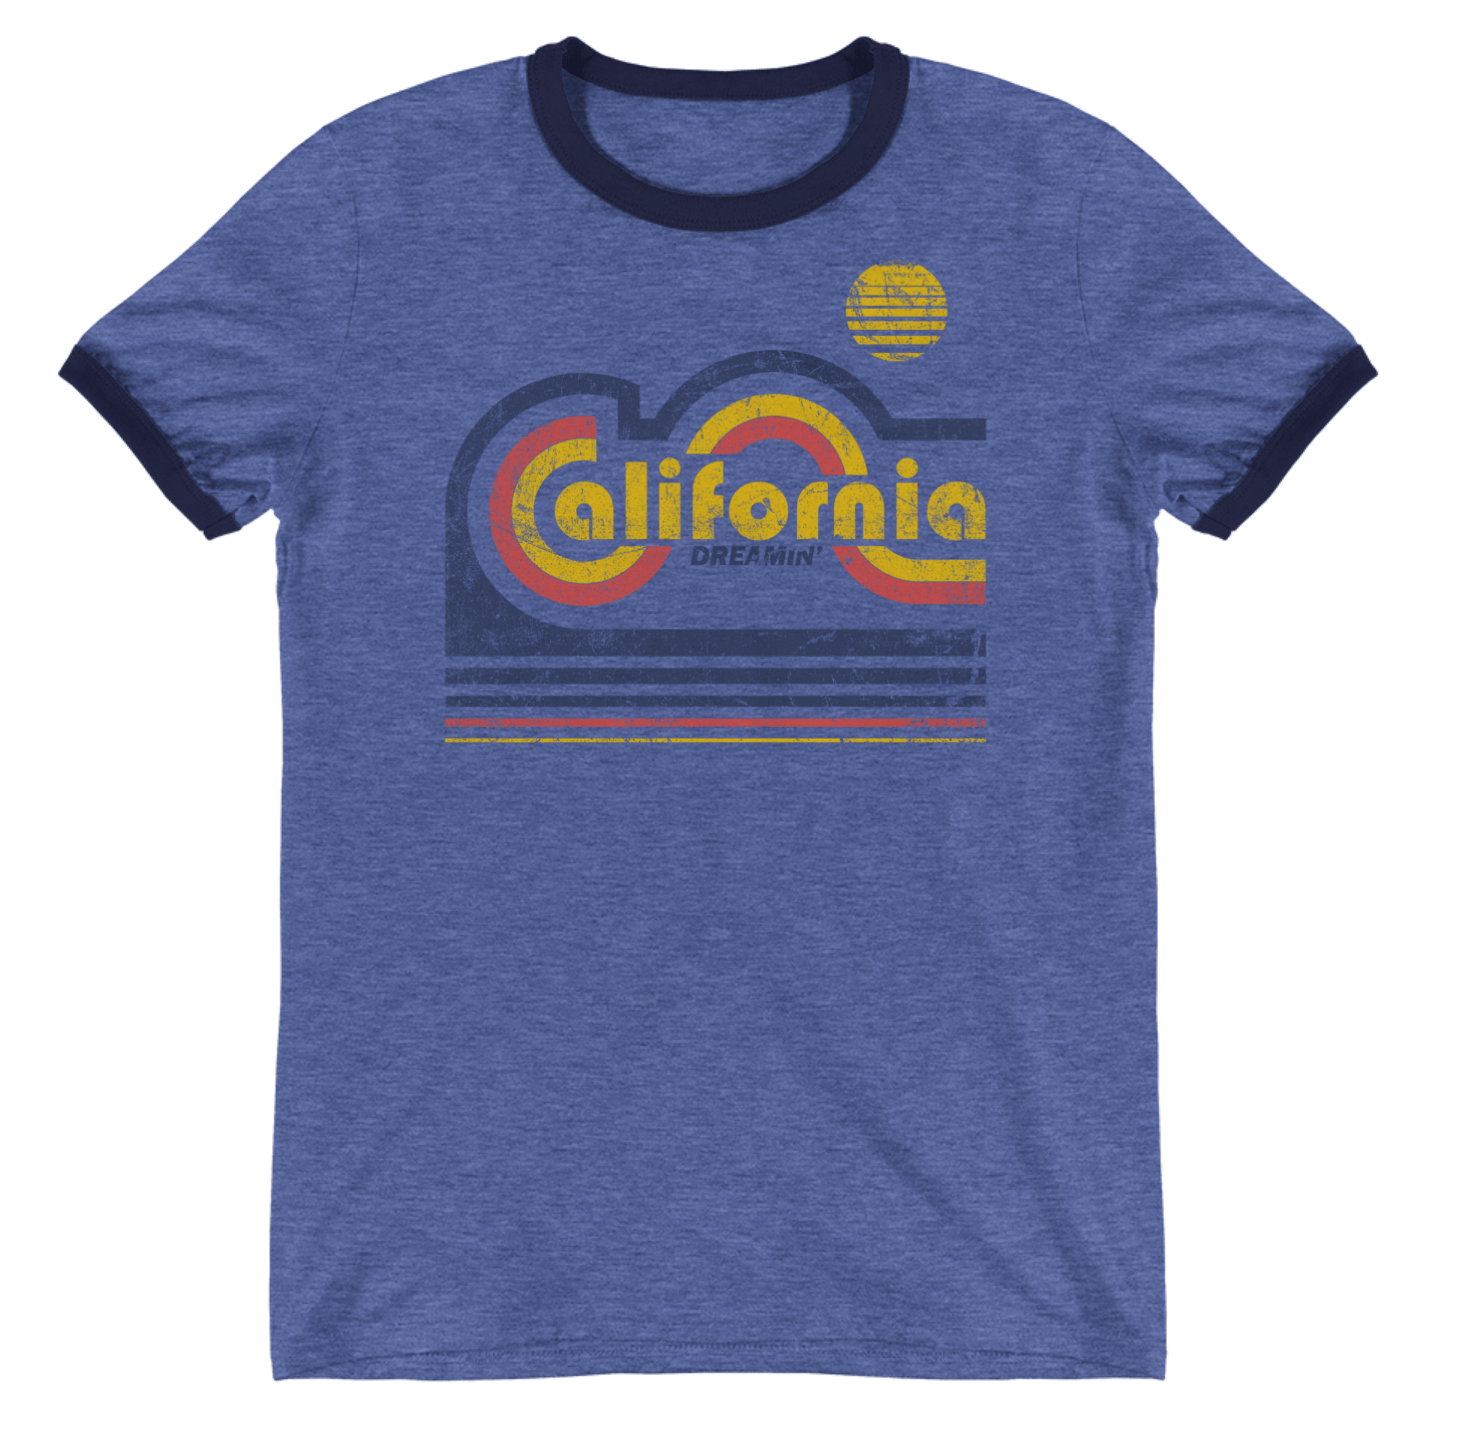 california t shirt for men retro style california dreamin. Black Bedroom Furniture Sets. Home Design Ideas